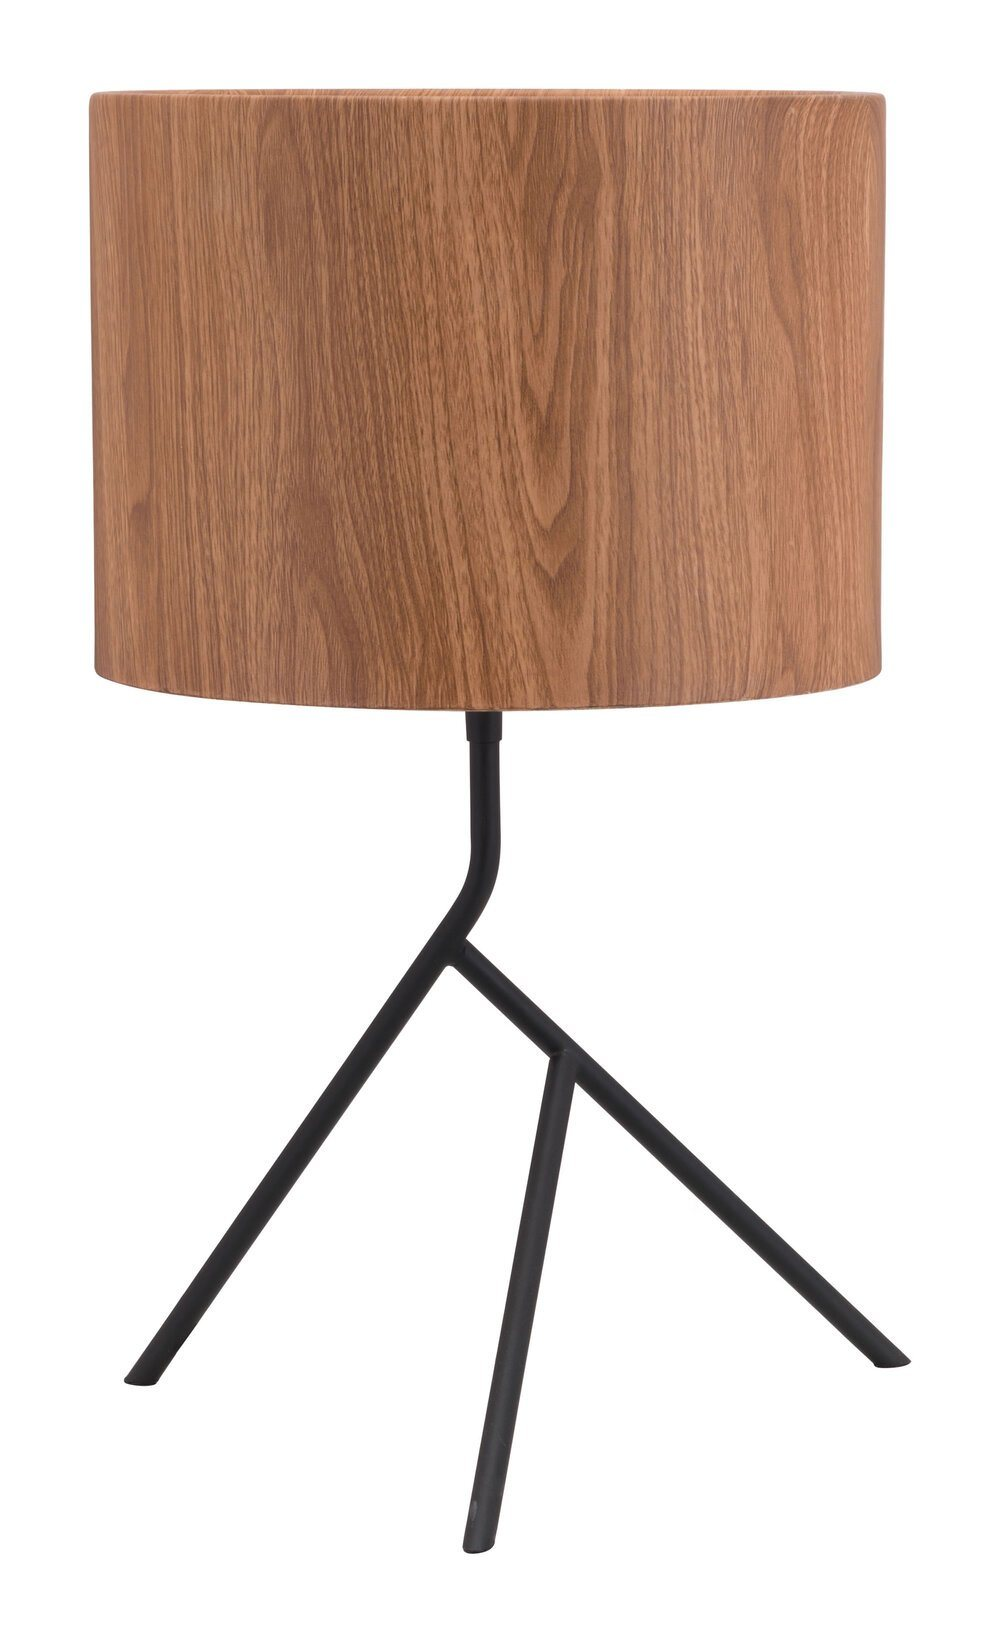 mid-century modern lamp with three asymmetrical feet and a wood-grain lamp shade